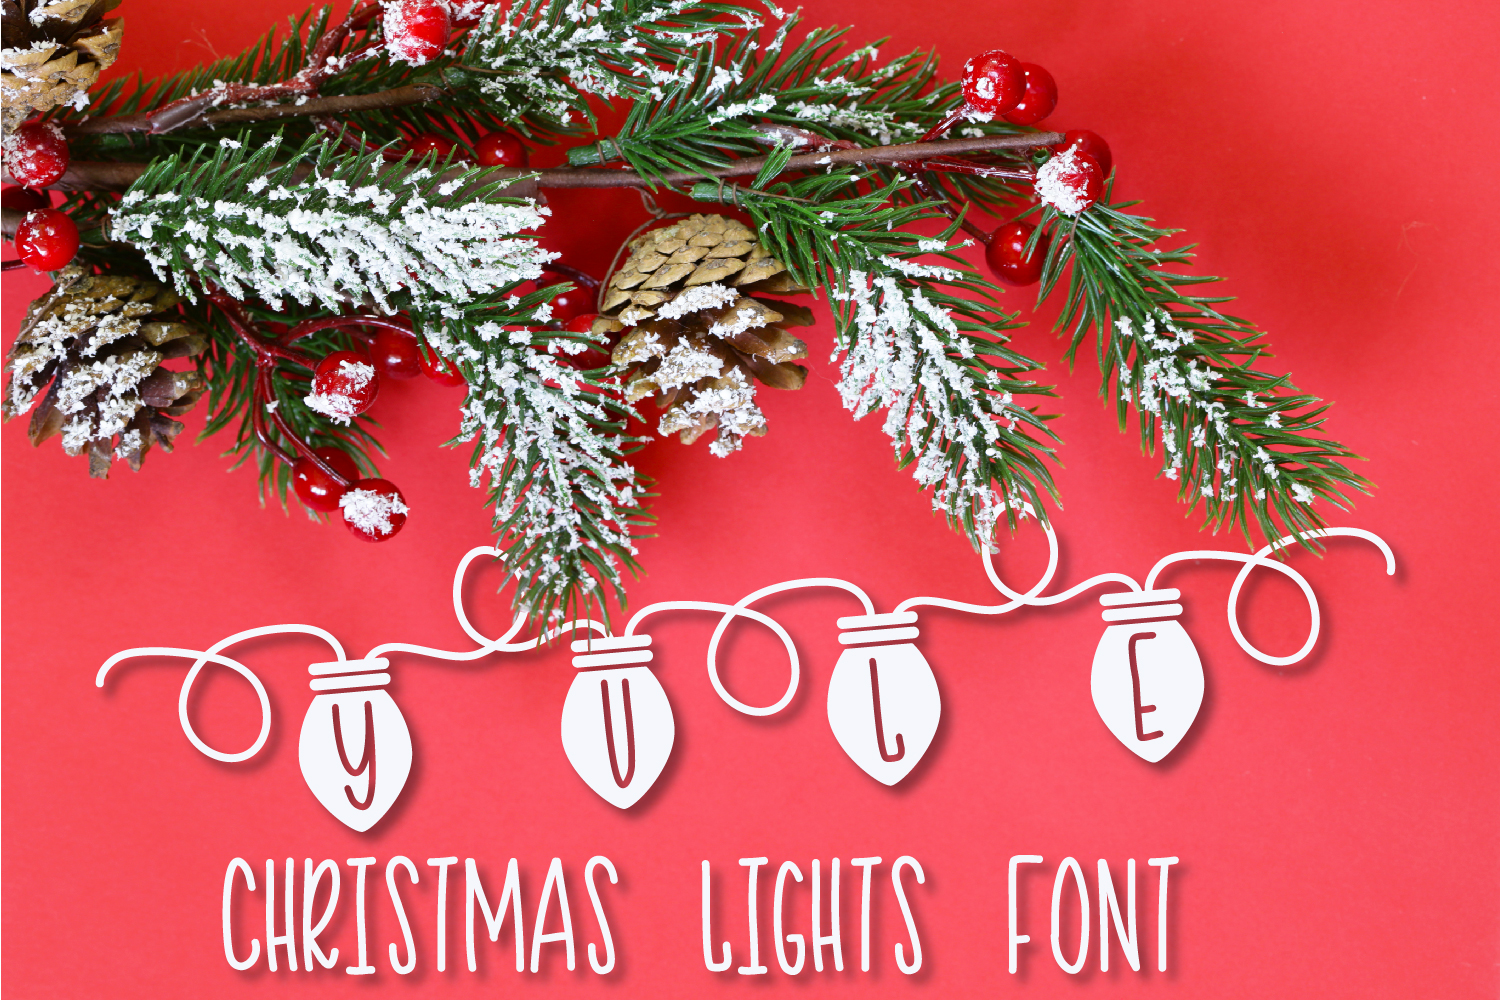 YULE - Christmas Lights Font  example image 1